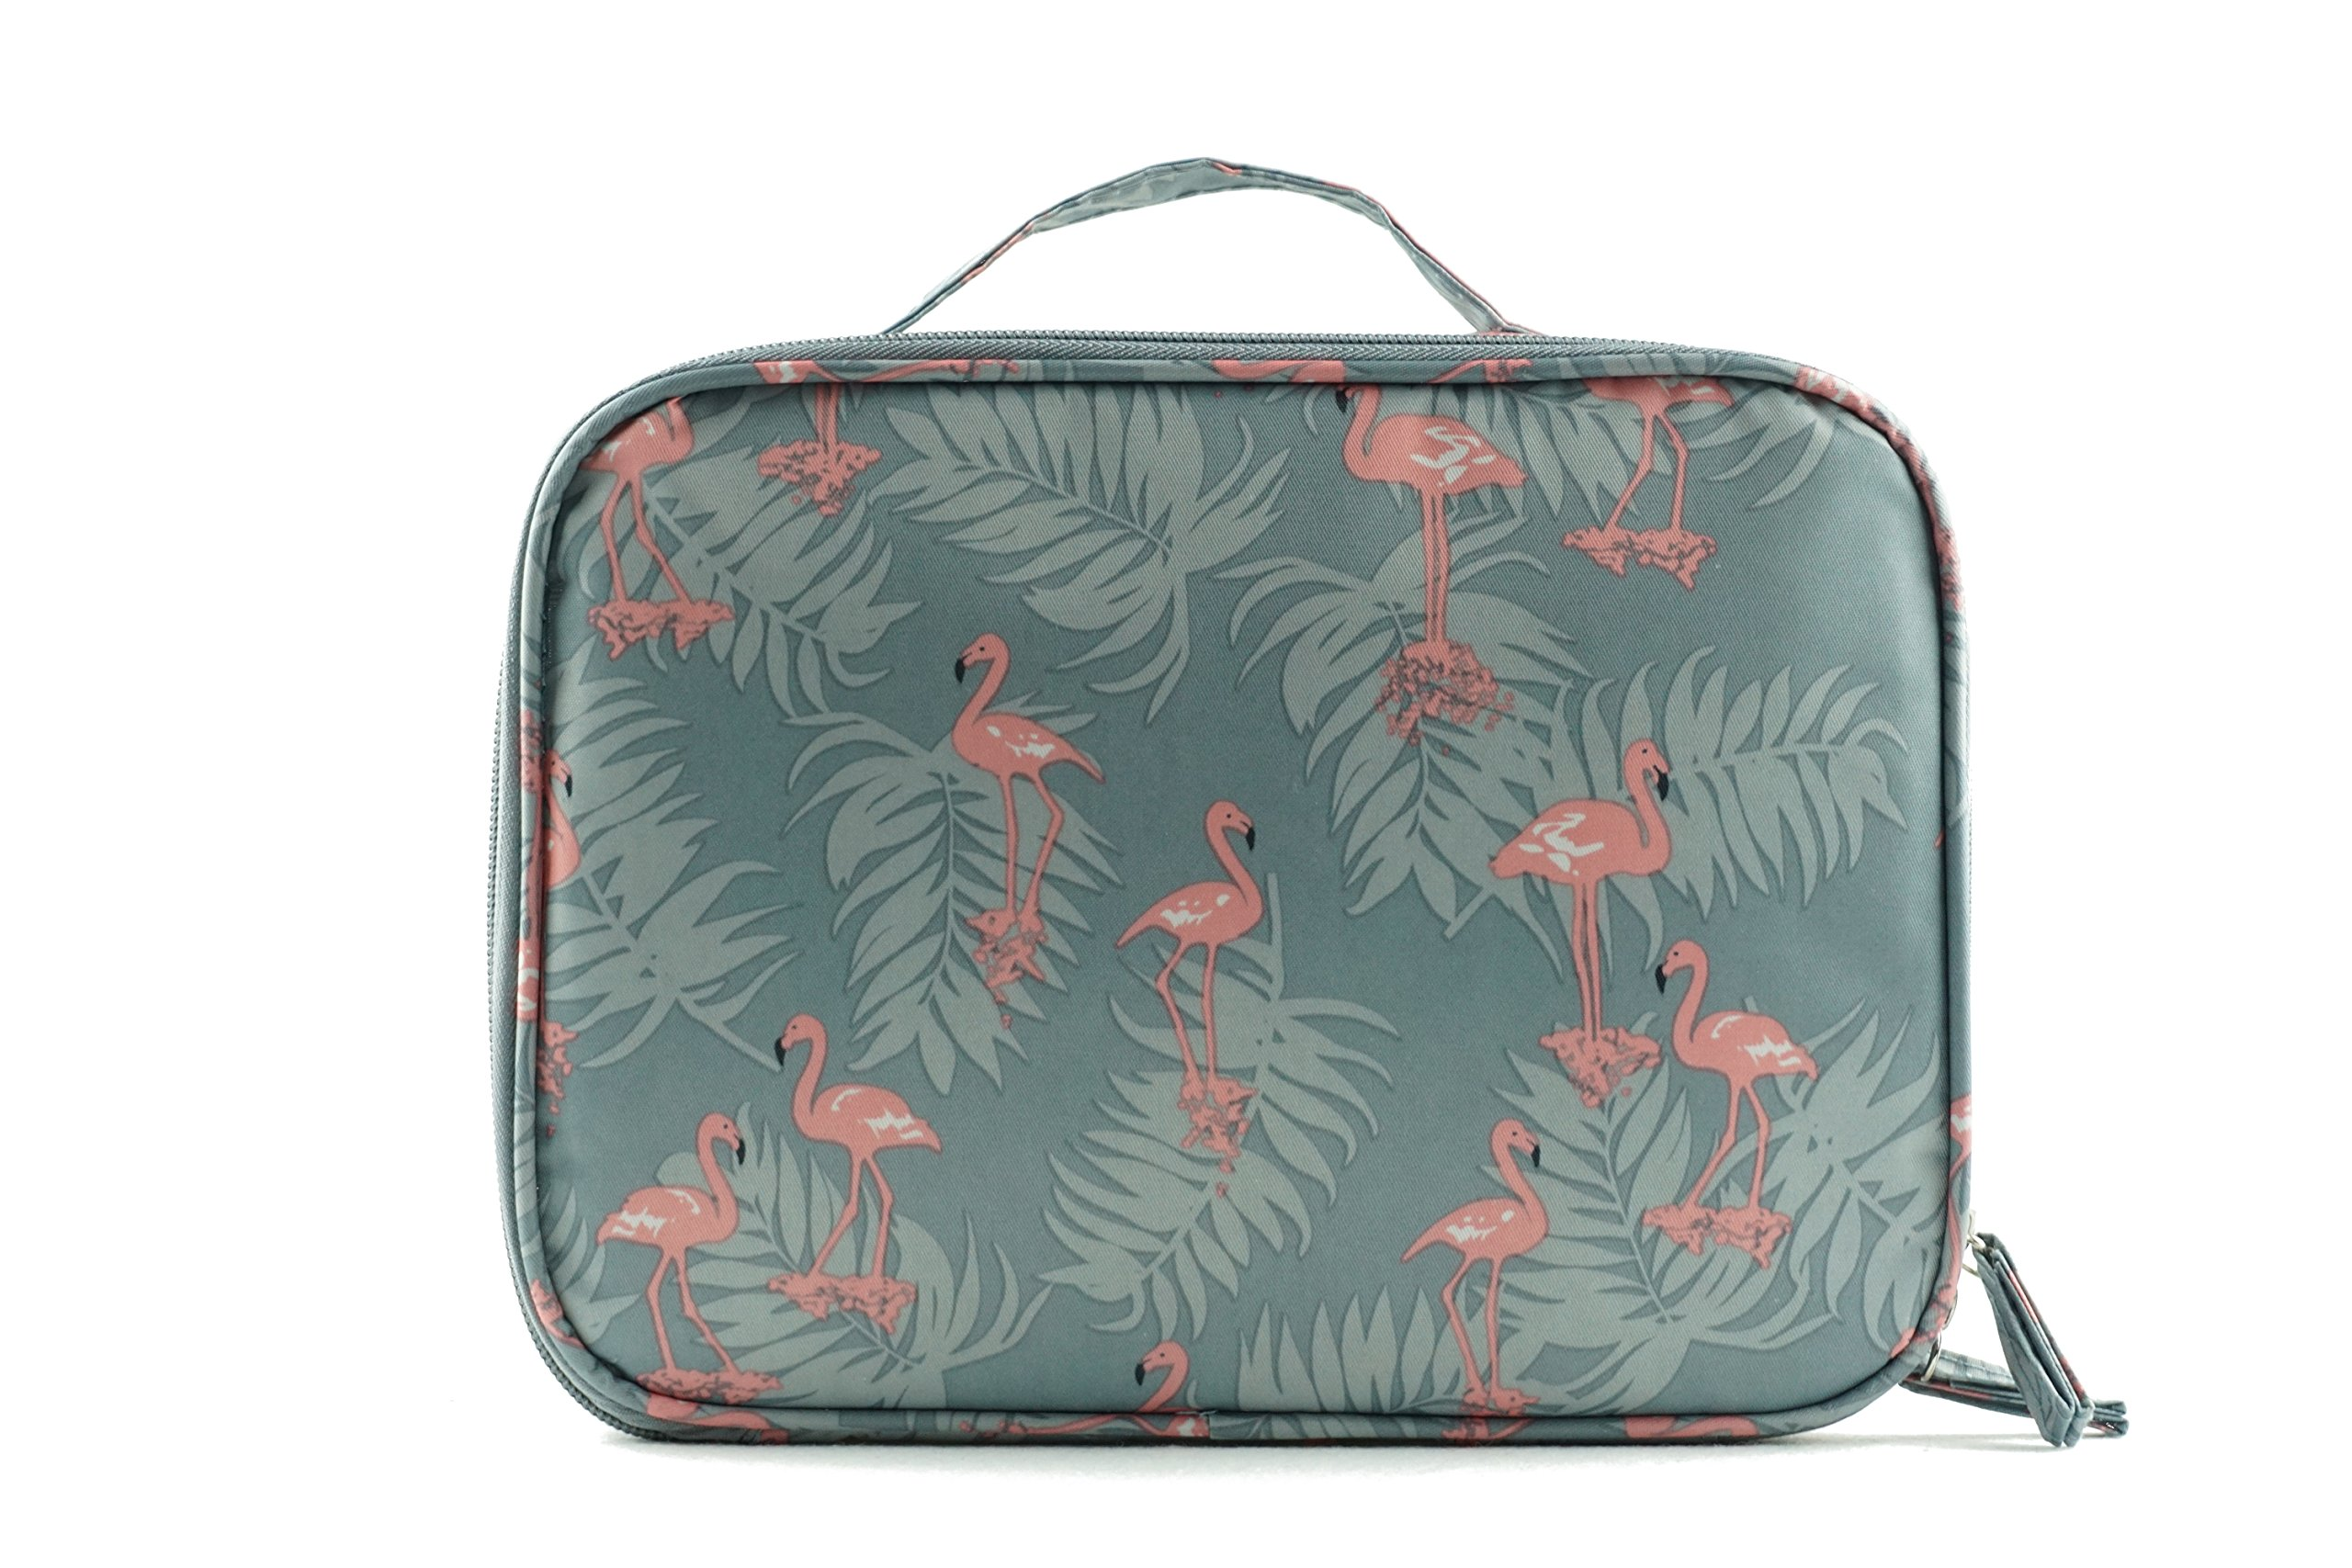 KUPIDER High Capacity Cosmetic Bags, Women Girls Waterproof Travel Bag, Portable Cosmetic and Toiletries Organizer Bag with Removable Partition for Makeup Brushes (Grey Flamingo)